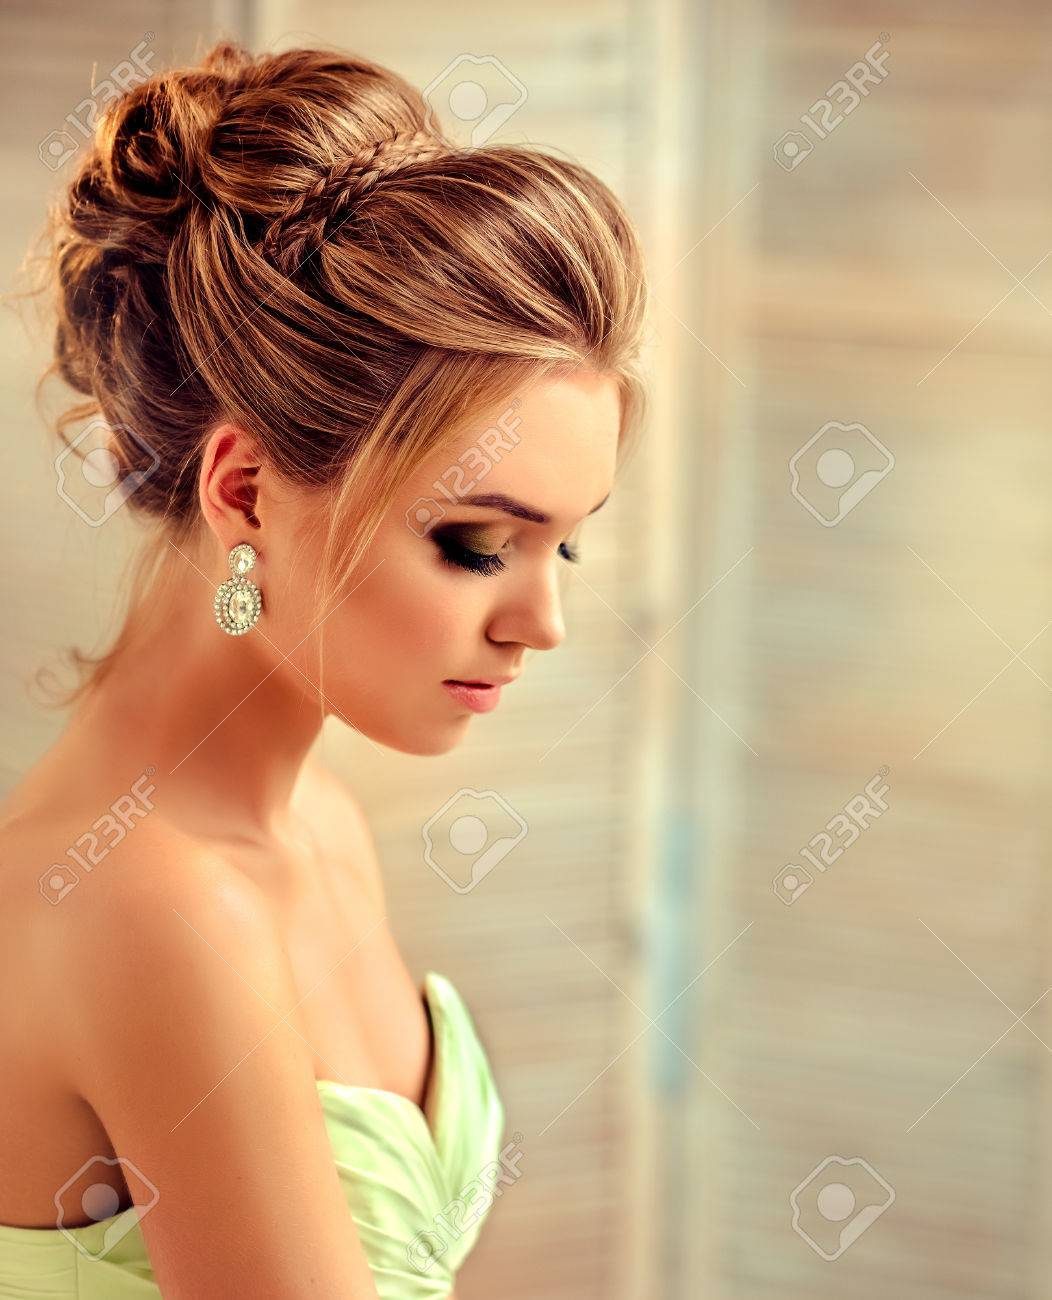 Hairstyle With Gown : hairstyle, Beautiful, Woman, Dressed, Evening, Gown., Example, Wedding, Hairstyle.., Stock, Photo,, Picture, Royalty, Image., Image, 85037412.